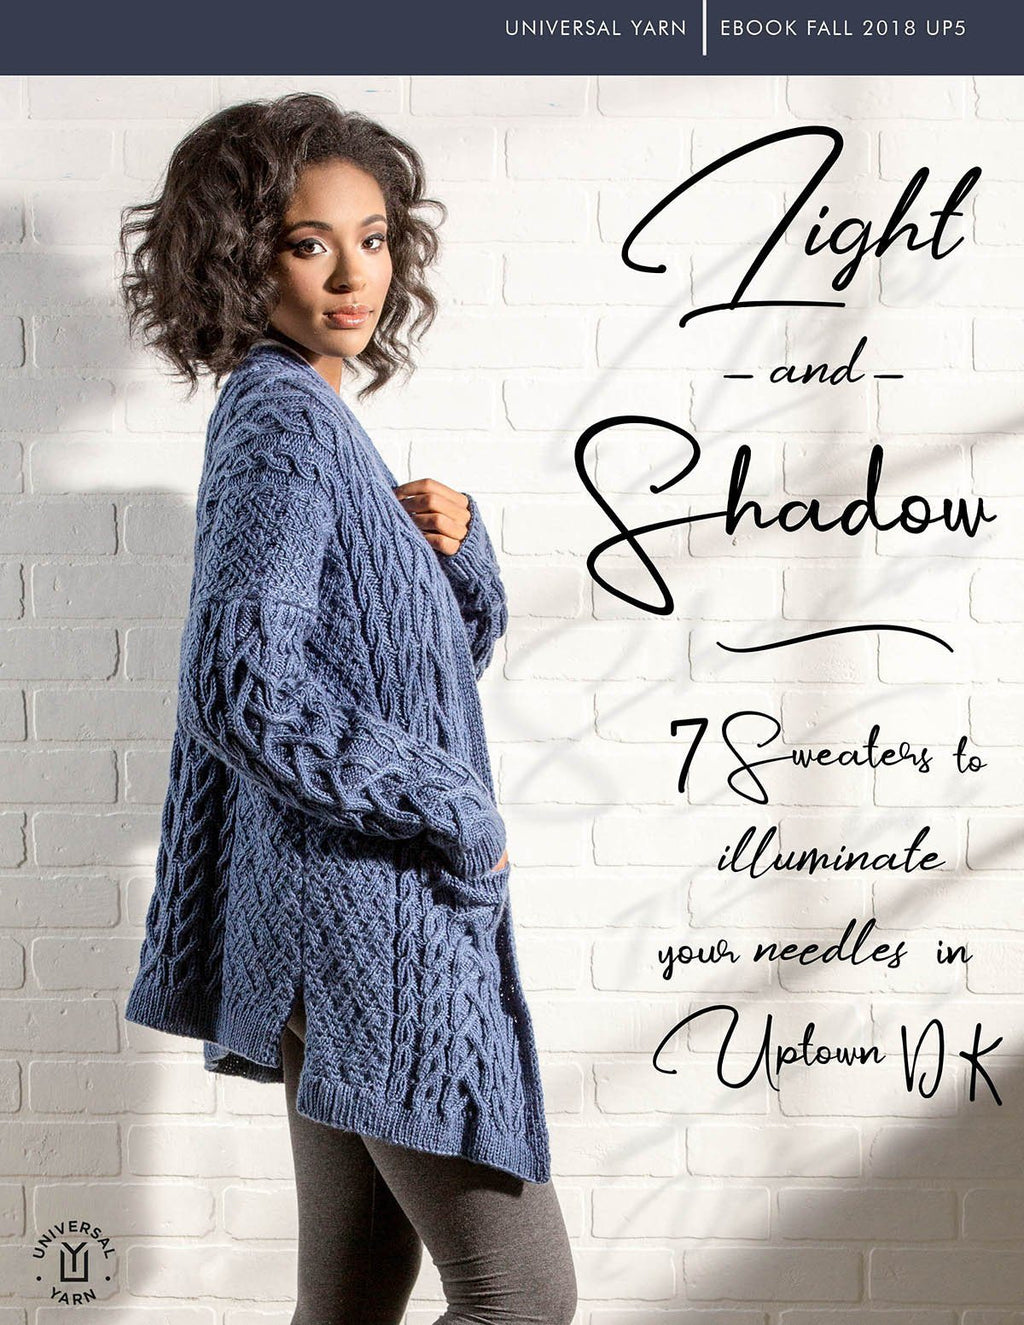 Uptown DK: Light and Shadow Pattern Universal Yarn